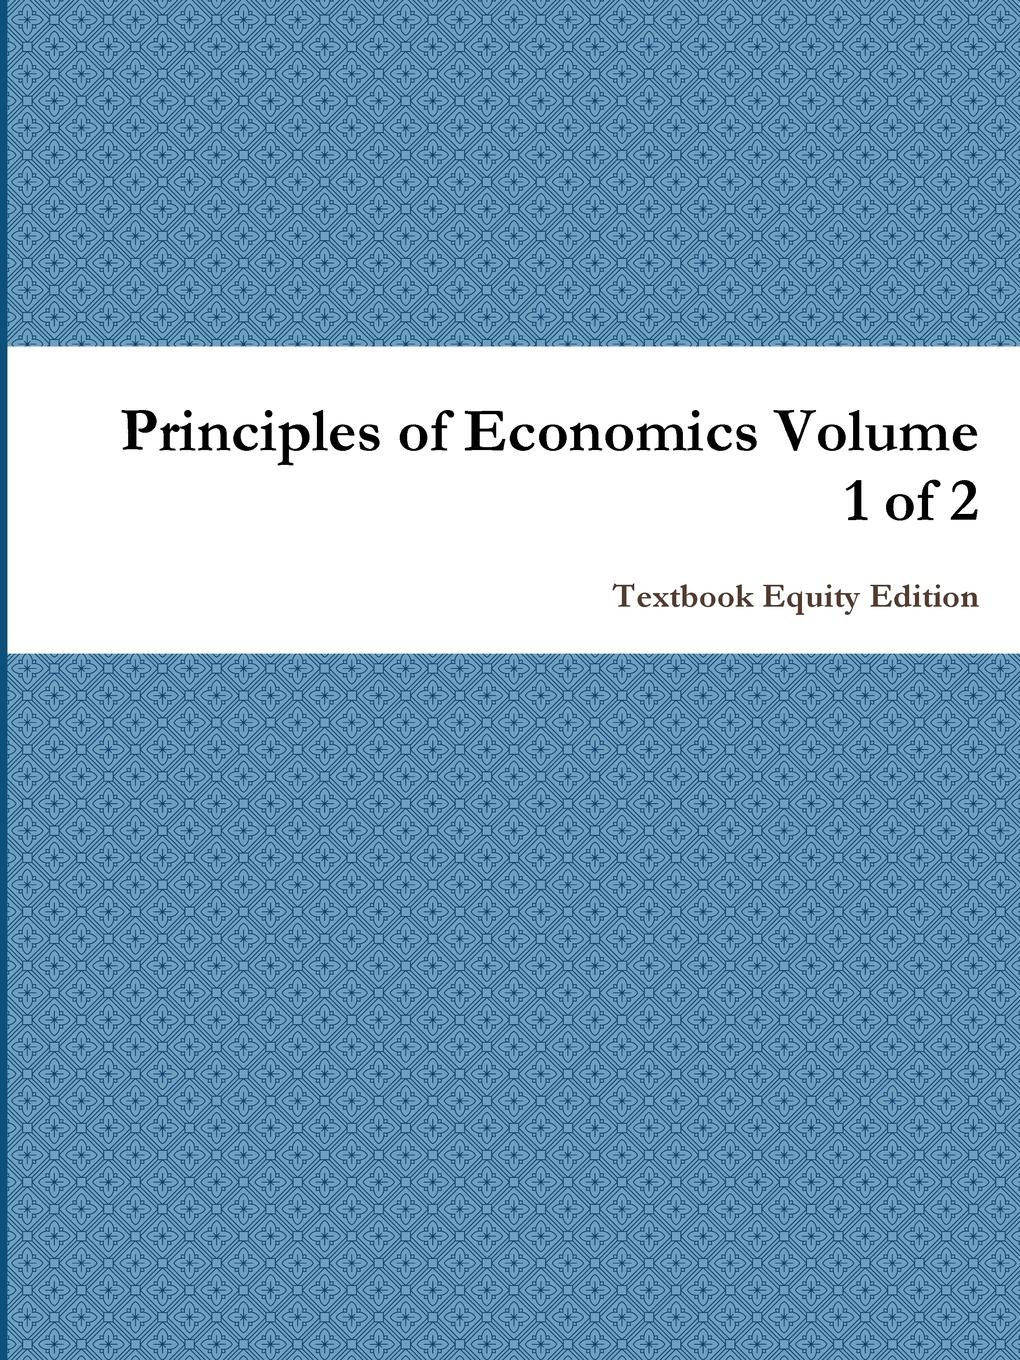 Principles of Economics Volume 1 of 2 This is Volume 1 of 2, covering Chapters 1 - 23 of 34 chapters...